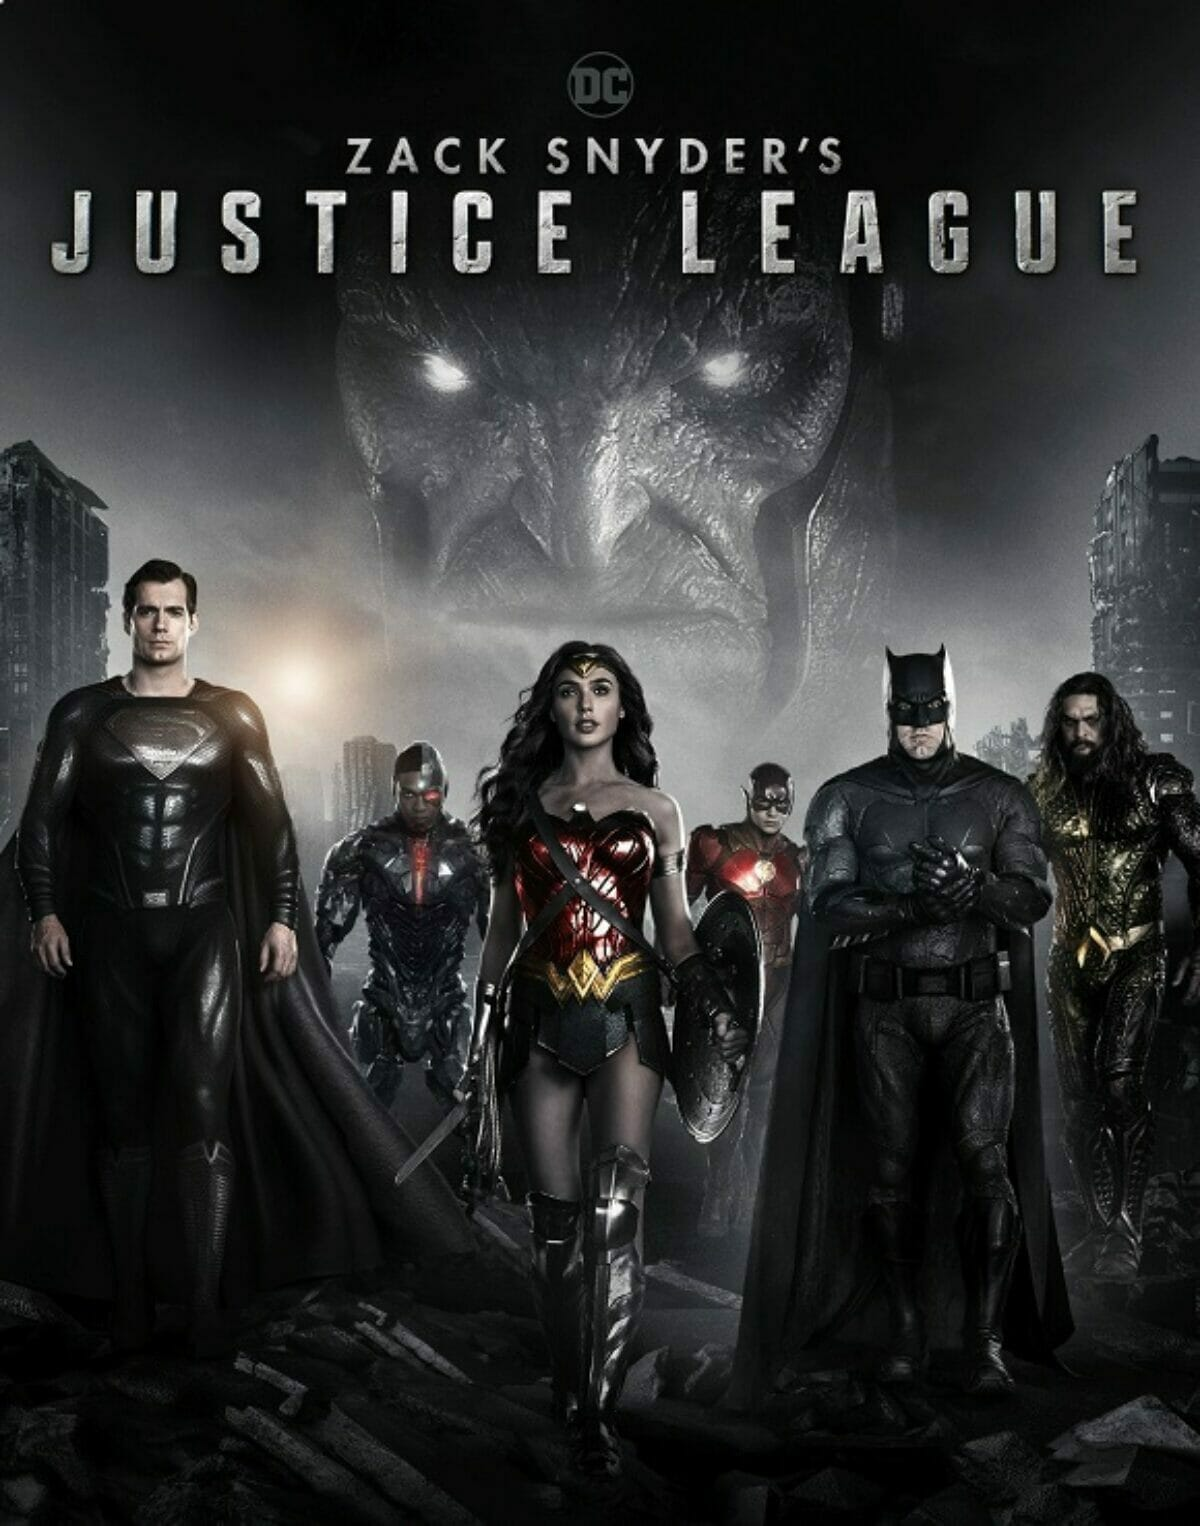 ZackSnydersJusticeLeague-SnyderCut-poster